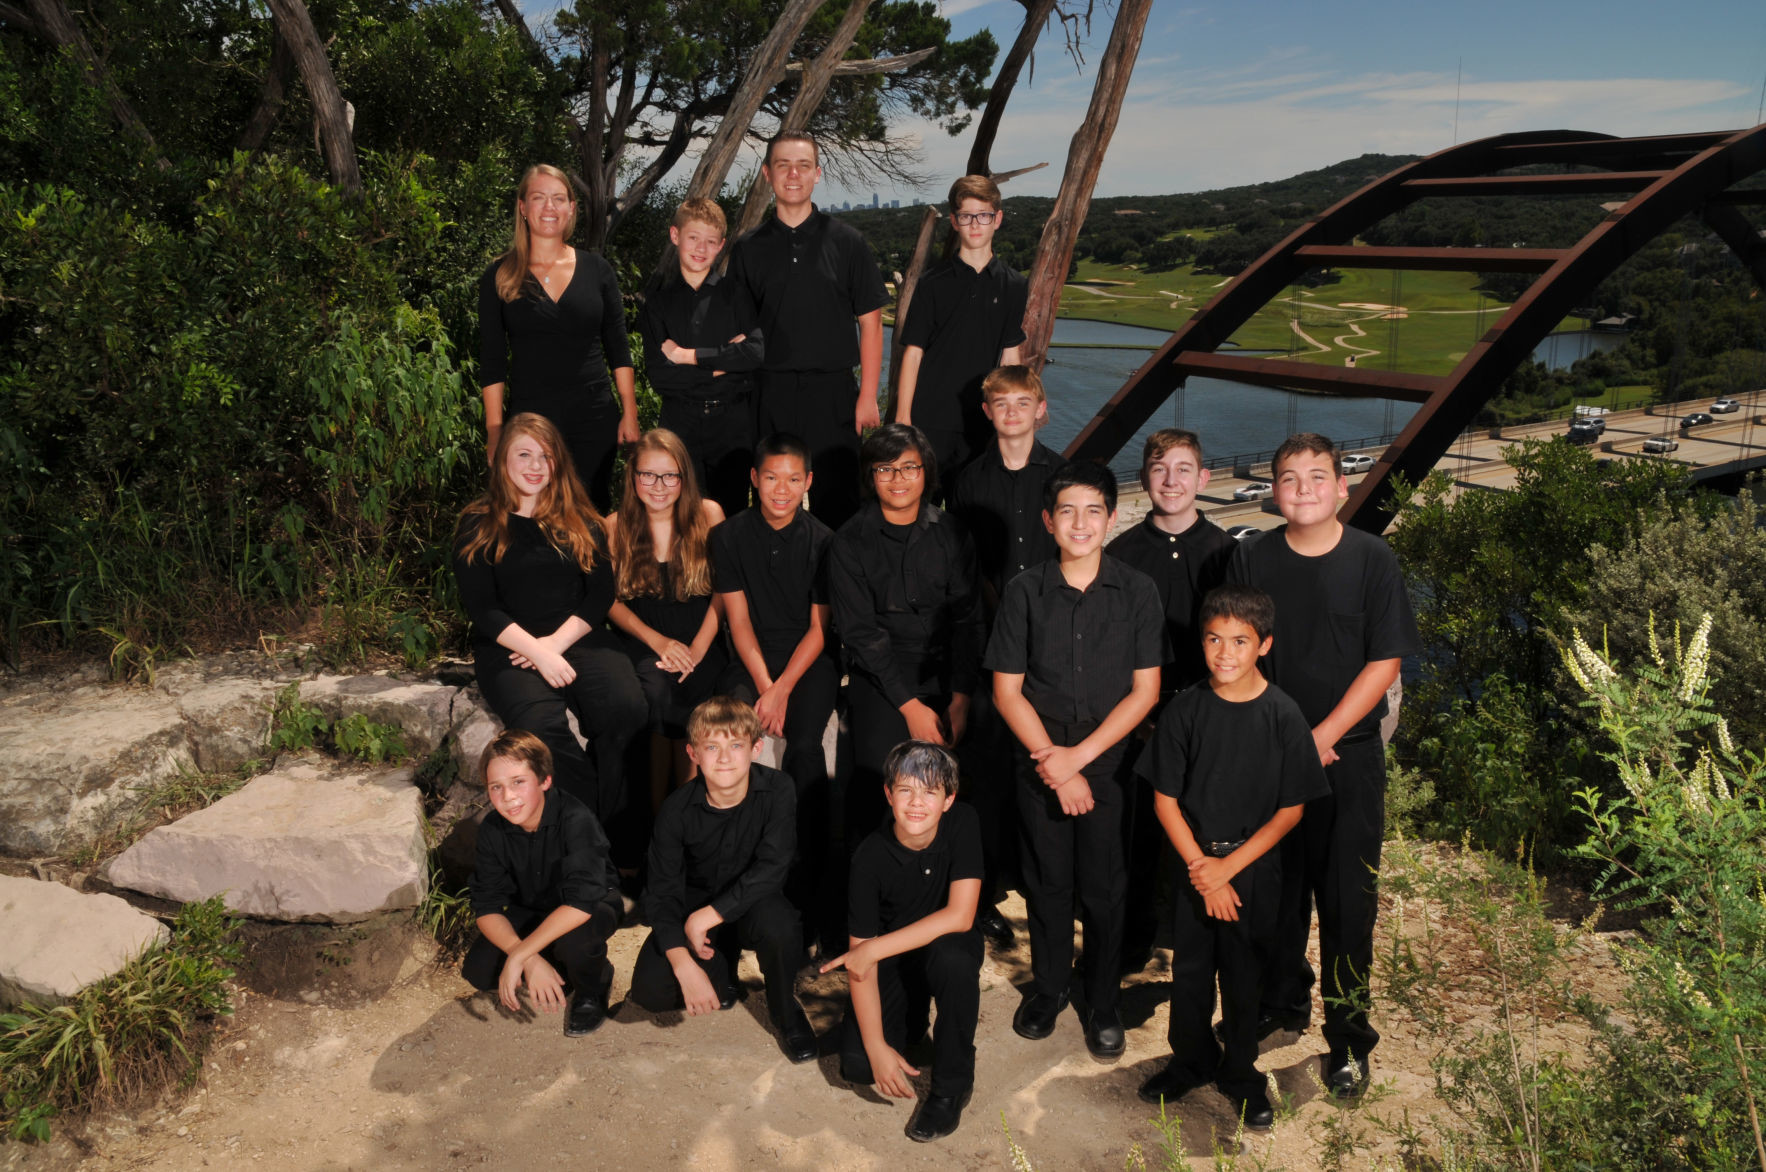 Wiley Middle School's percussion band won the International Percussion Ensemble Contest.